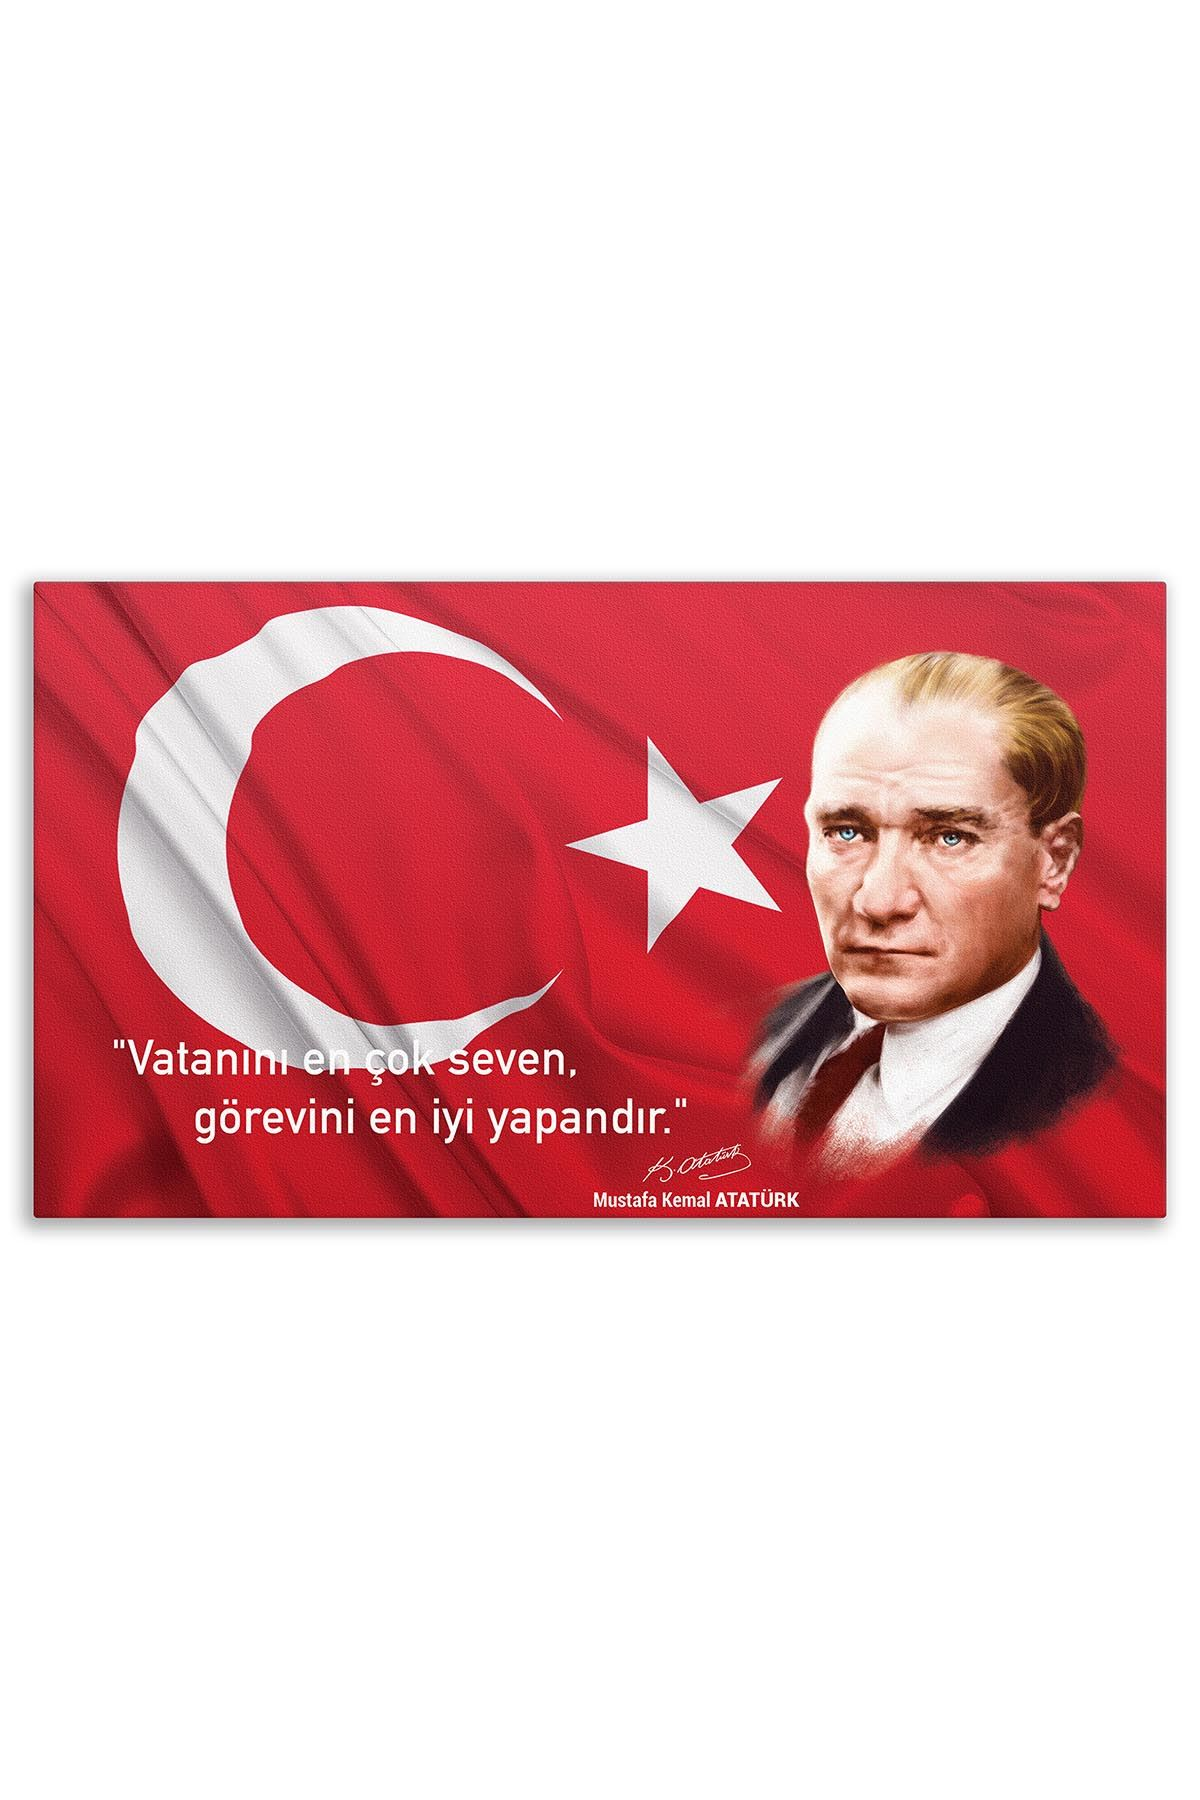 First President Ataturk Canvas Board | Printed Canvas Board | Customized Canvas Board |Digital Printing